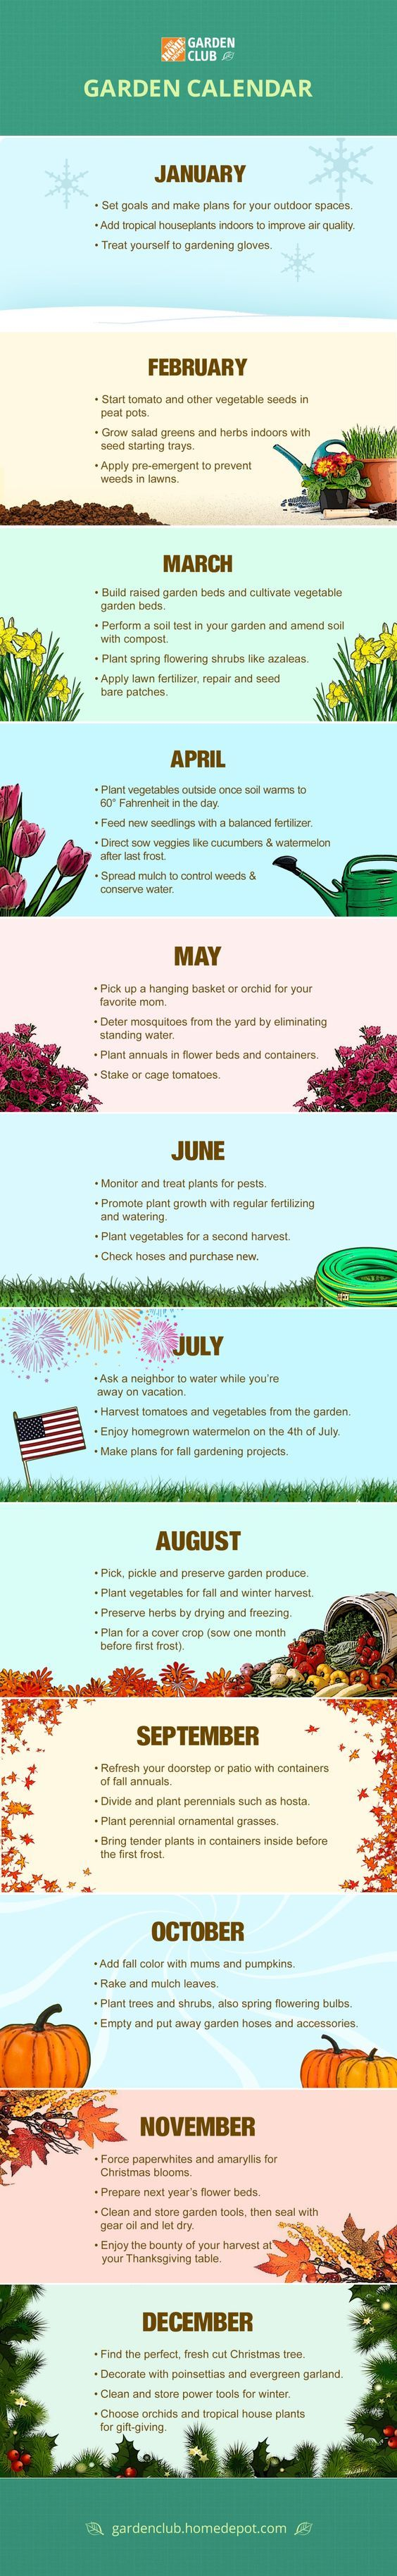 17 Best ideas about Gardening Calendar on Pinterest Starting a